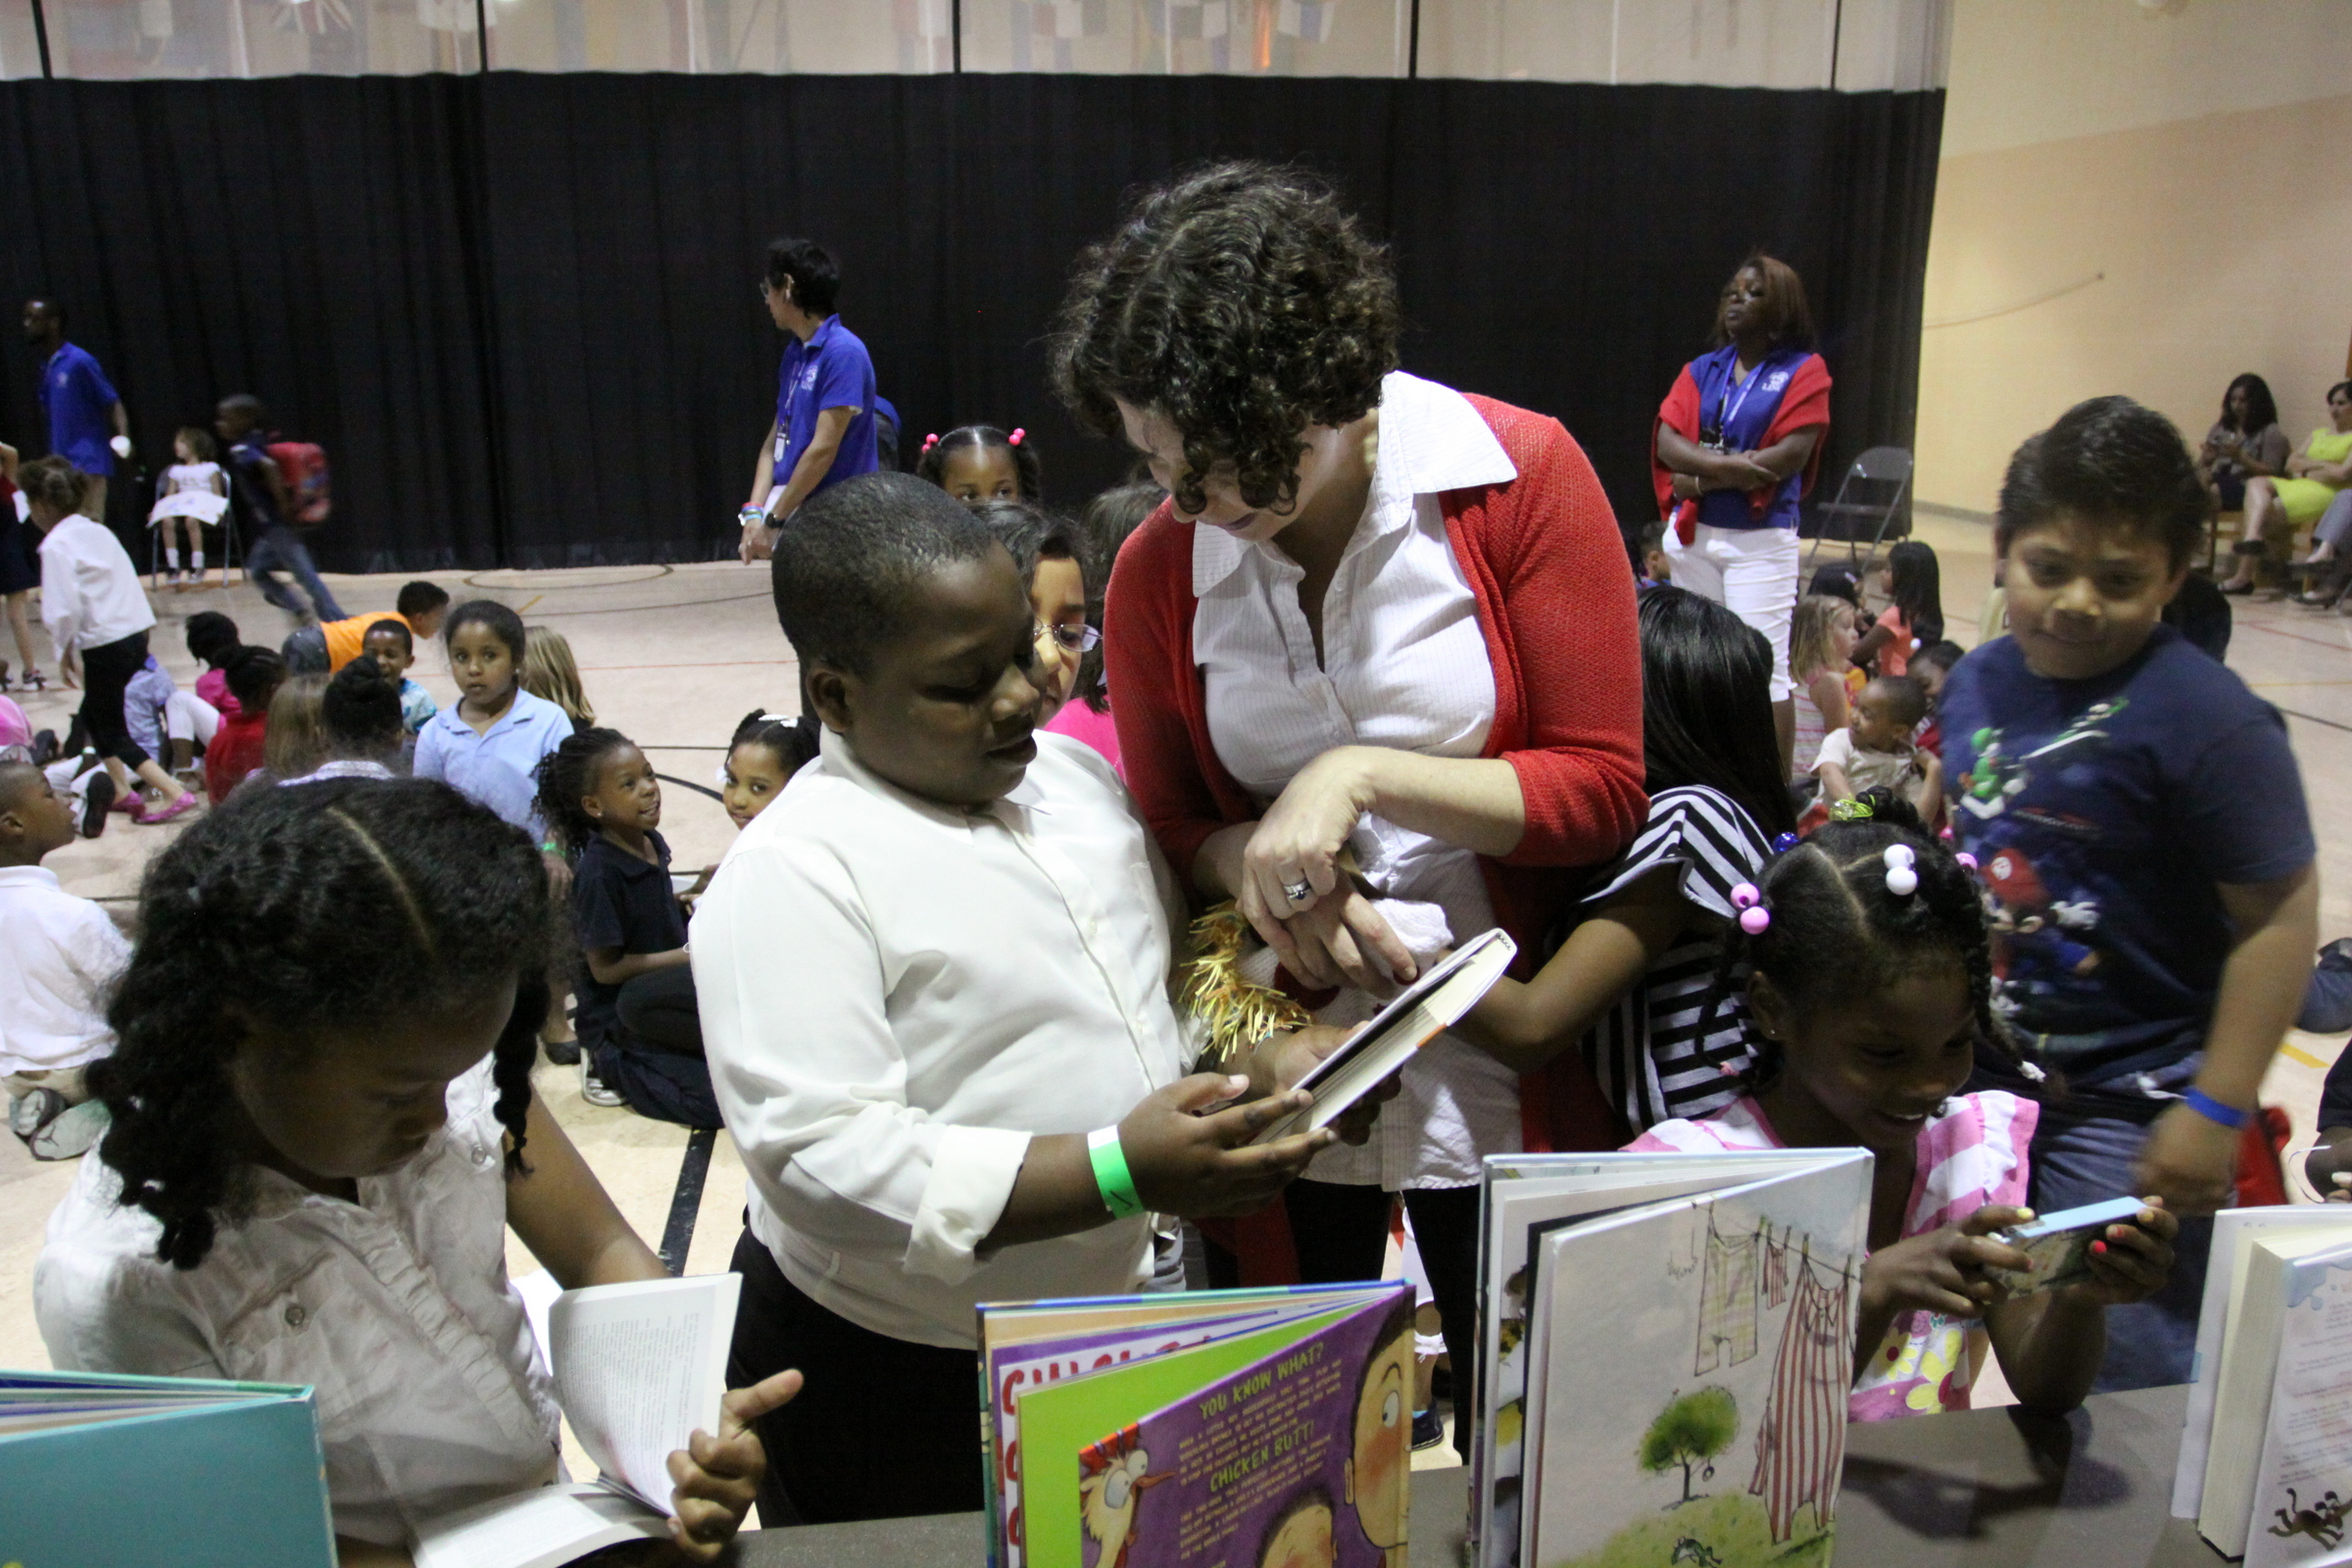 Author Erica Perl talks with and signs autographs for students at Foreign Language Academy in the KCPS